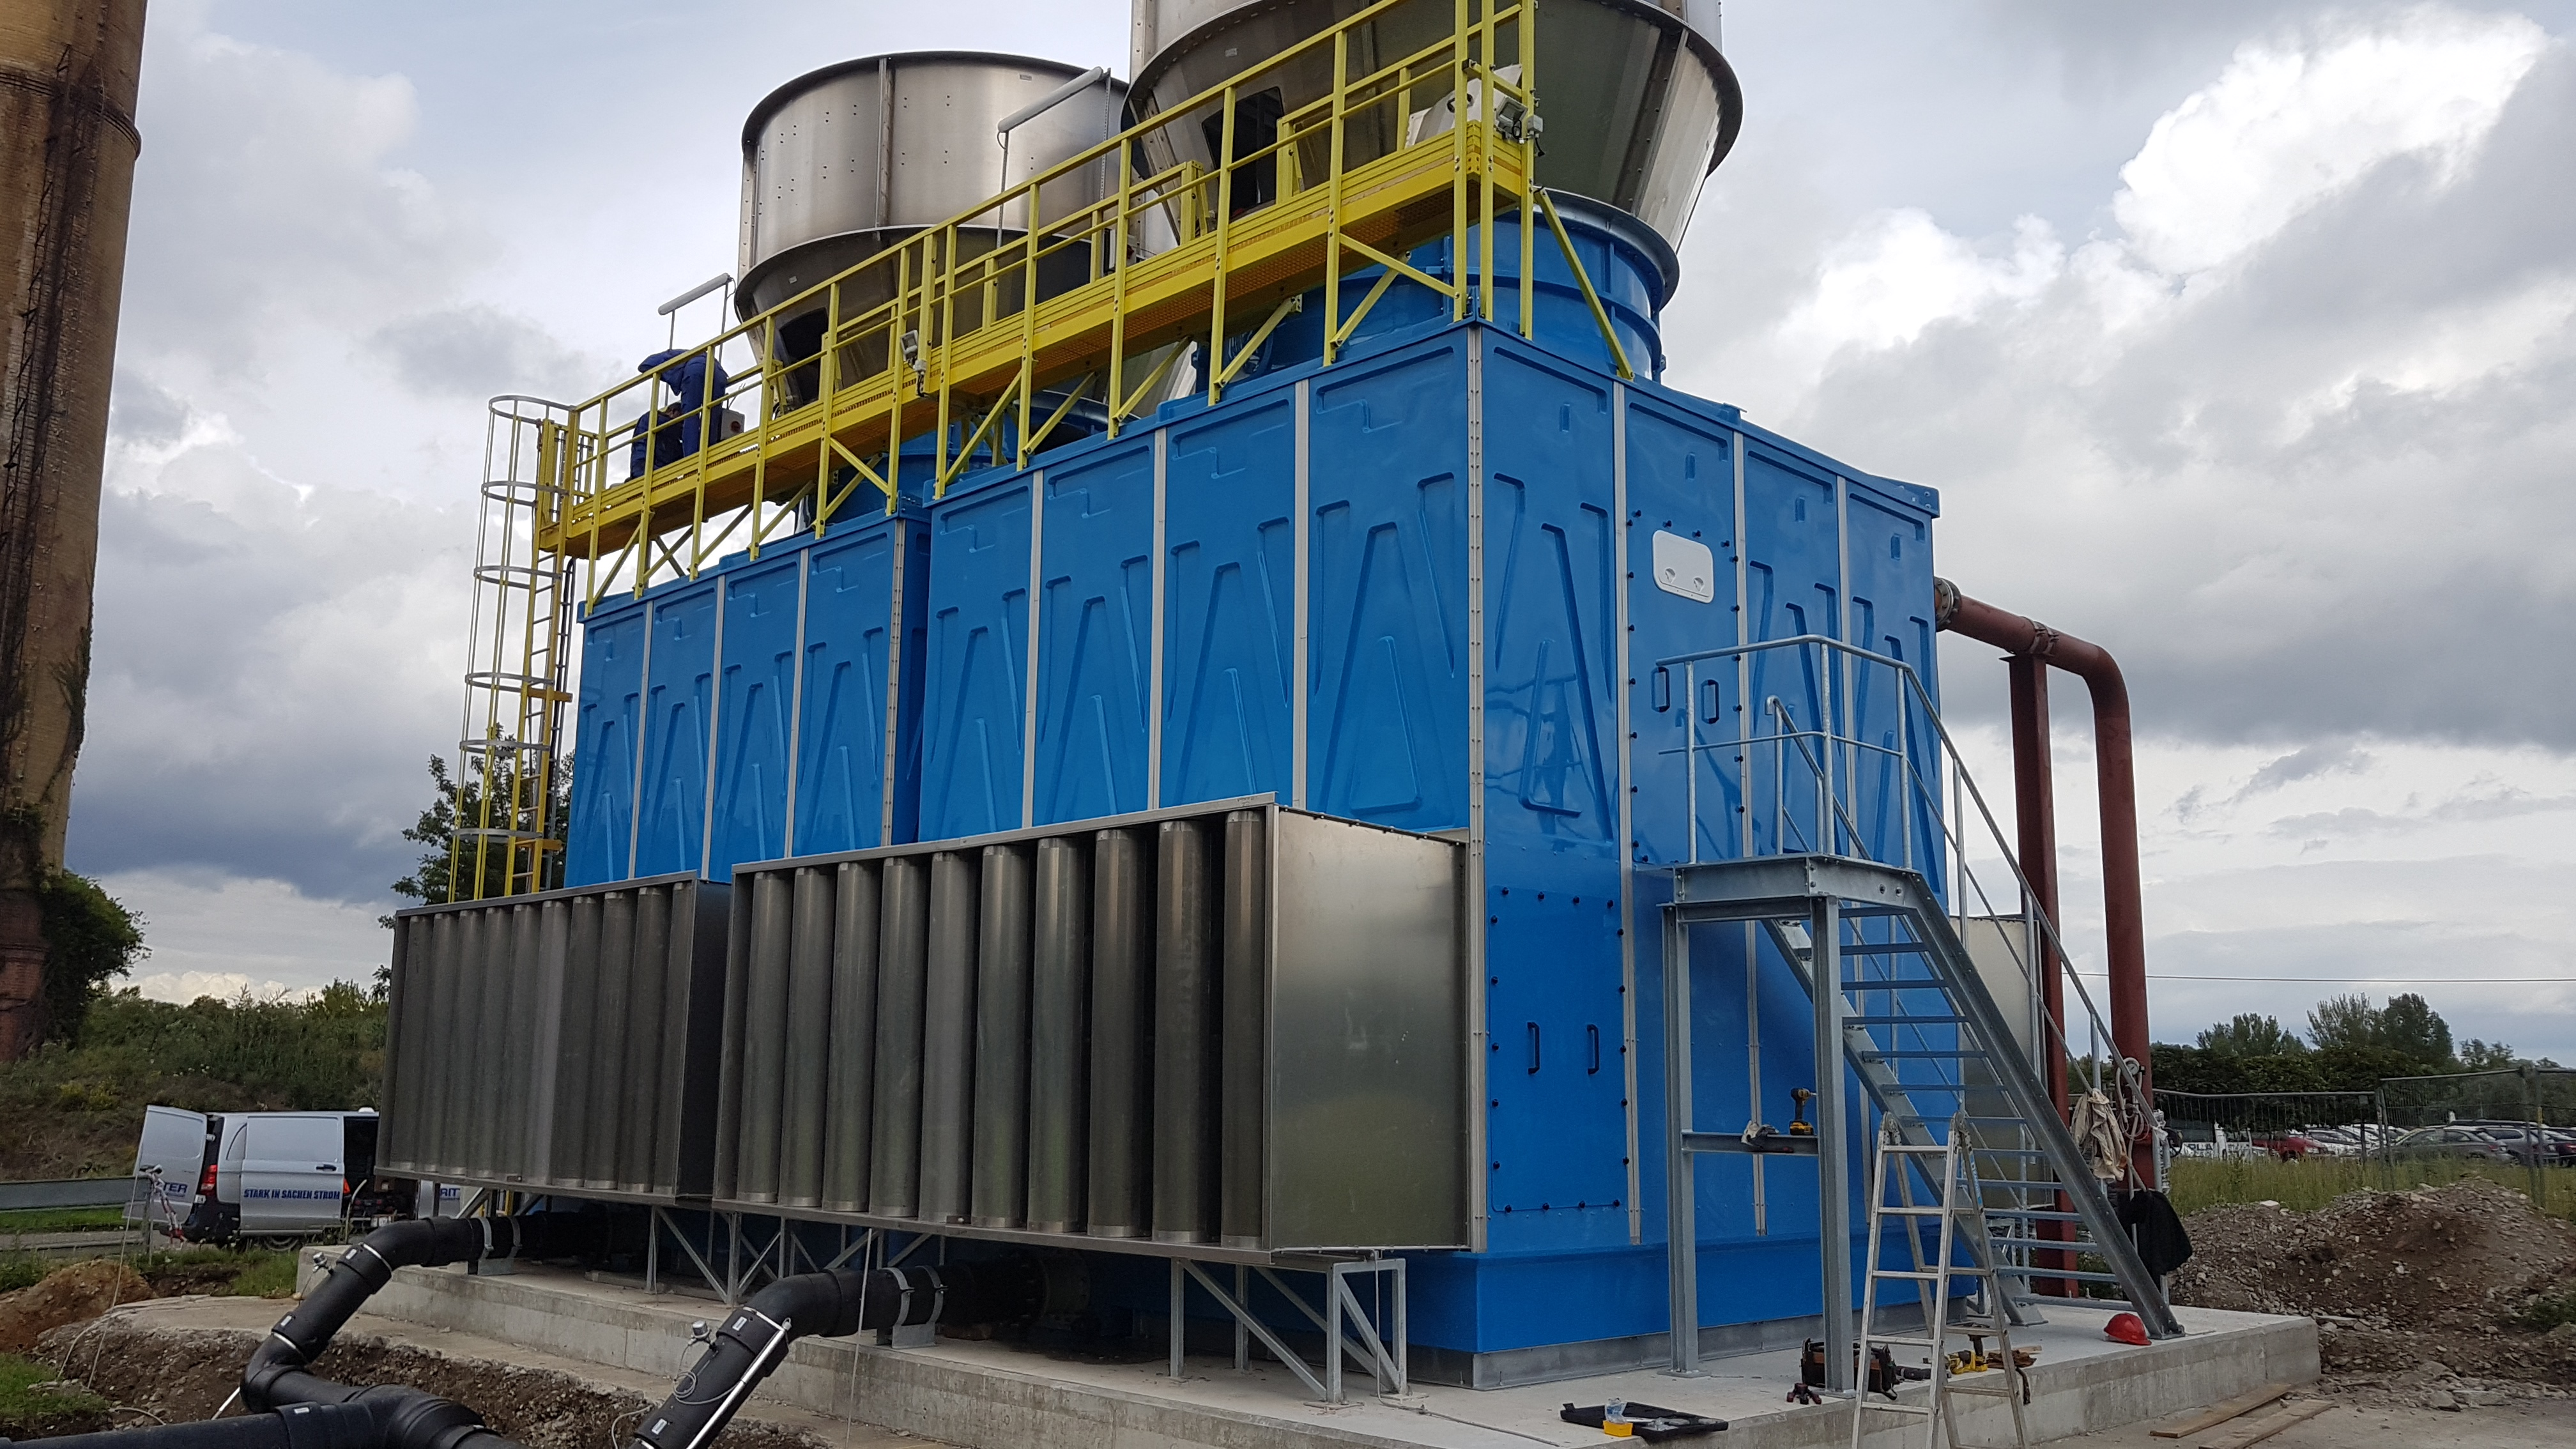 EWAG GmbH cooling tower